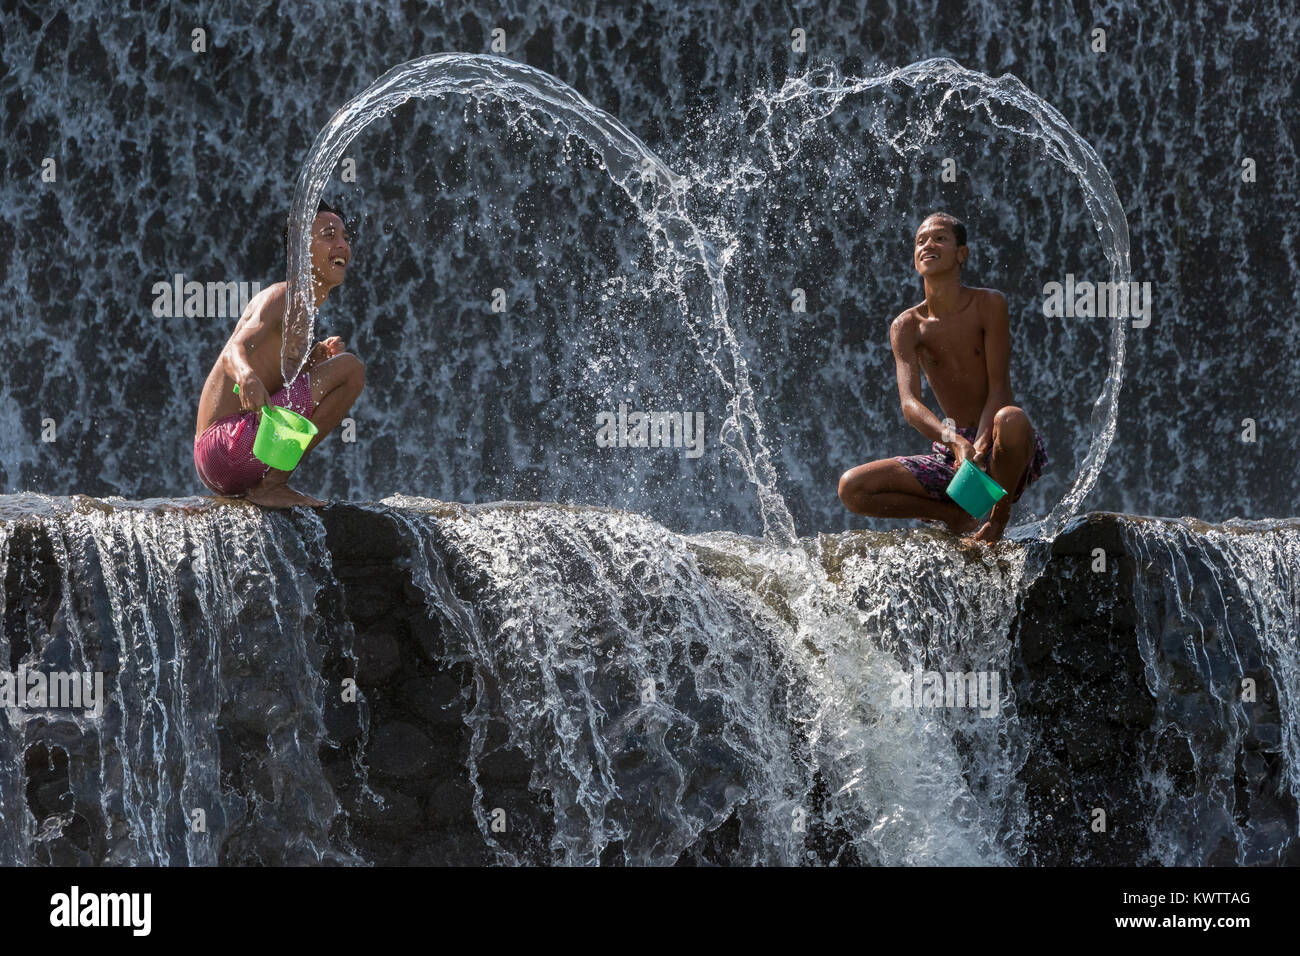 Water heart made by boys playing in the water at Tukad Unda dam on a hot day, Bali Island, Indonesia - Stock Image